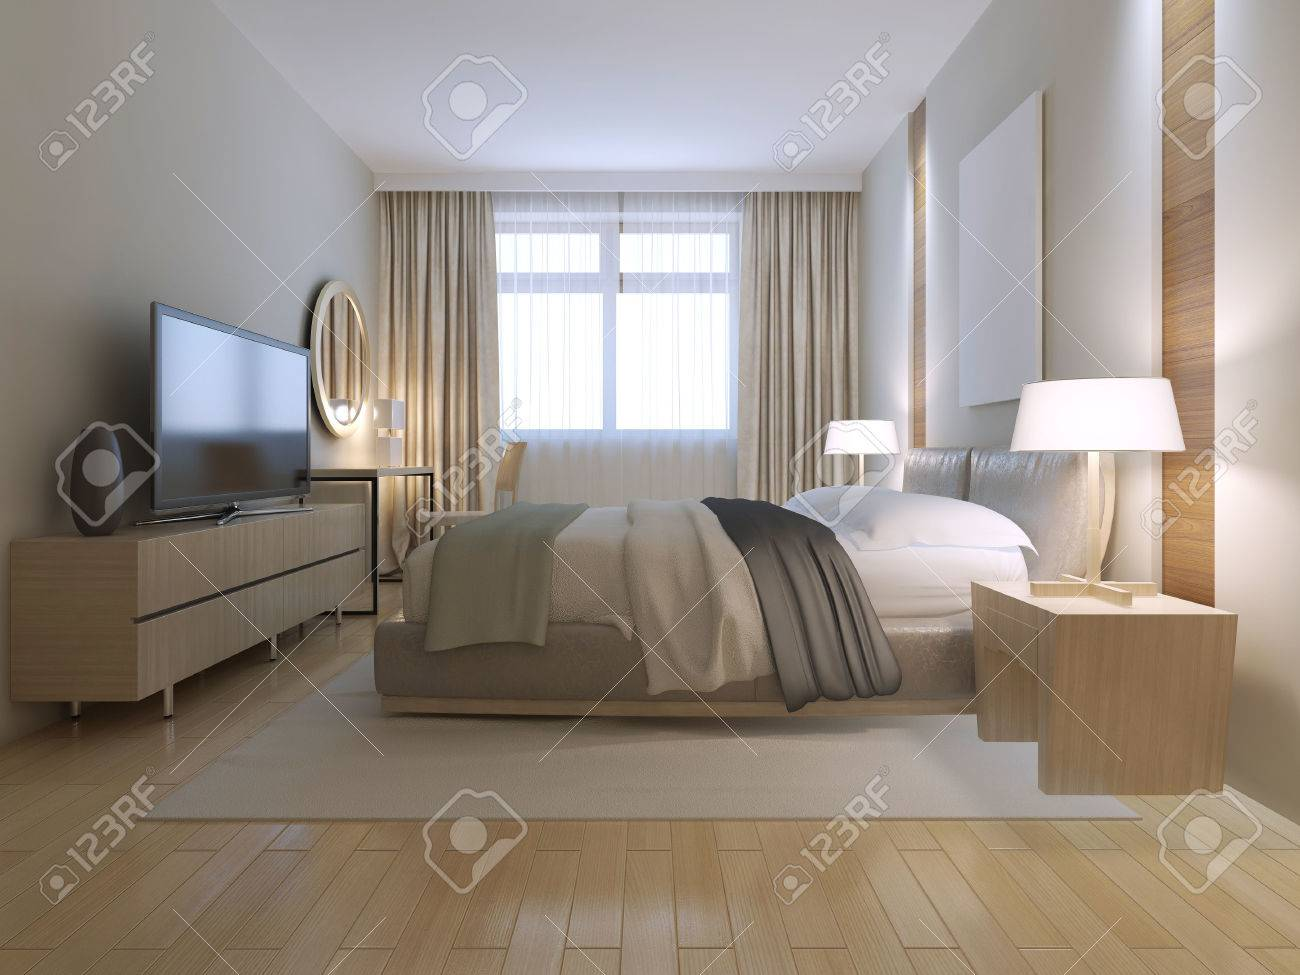 Contemporary Bedroom Design Spacious Room With Light Wood Parquet Stock Photo Picture And Royalty Free Image Image 46284338